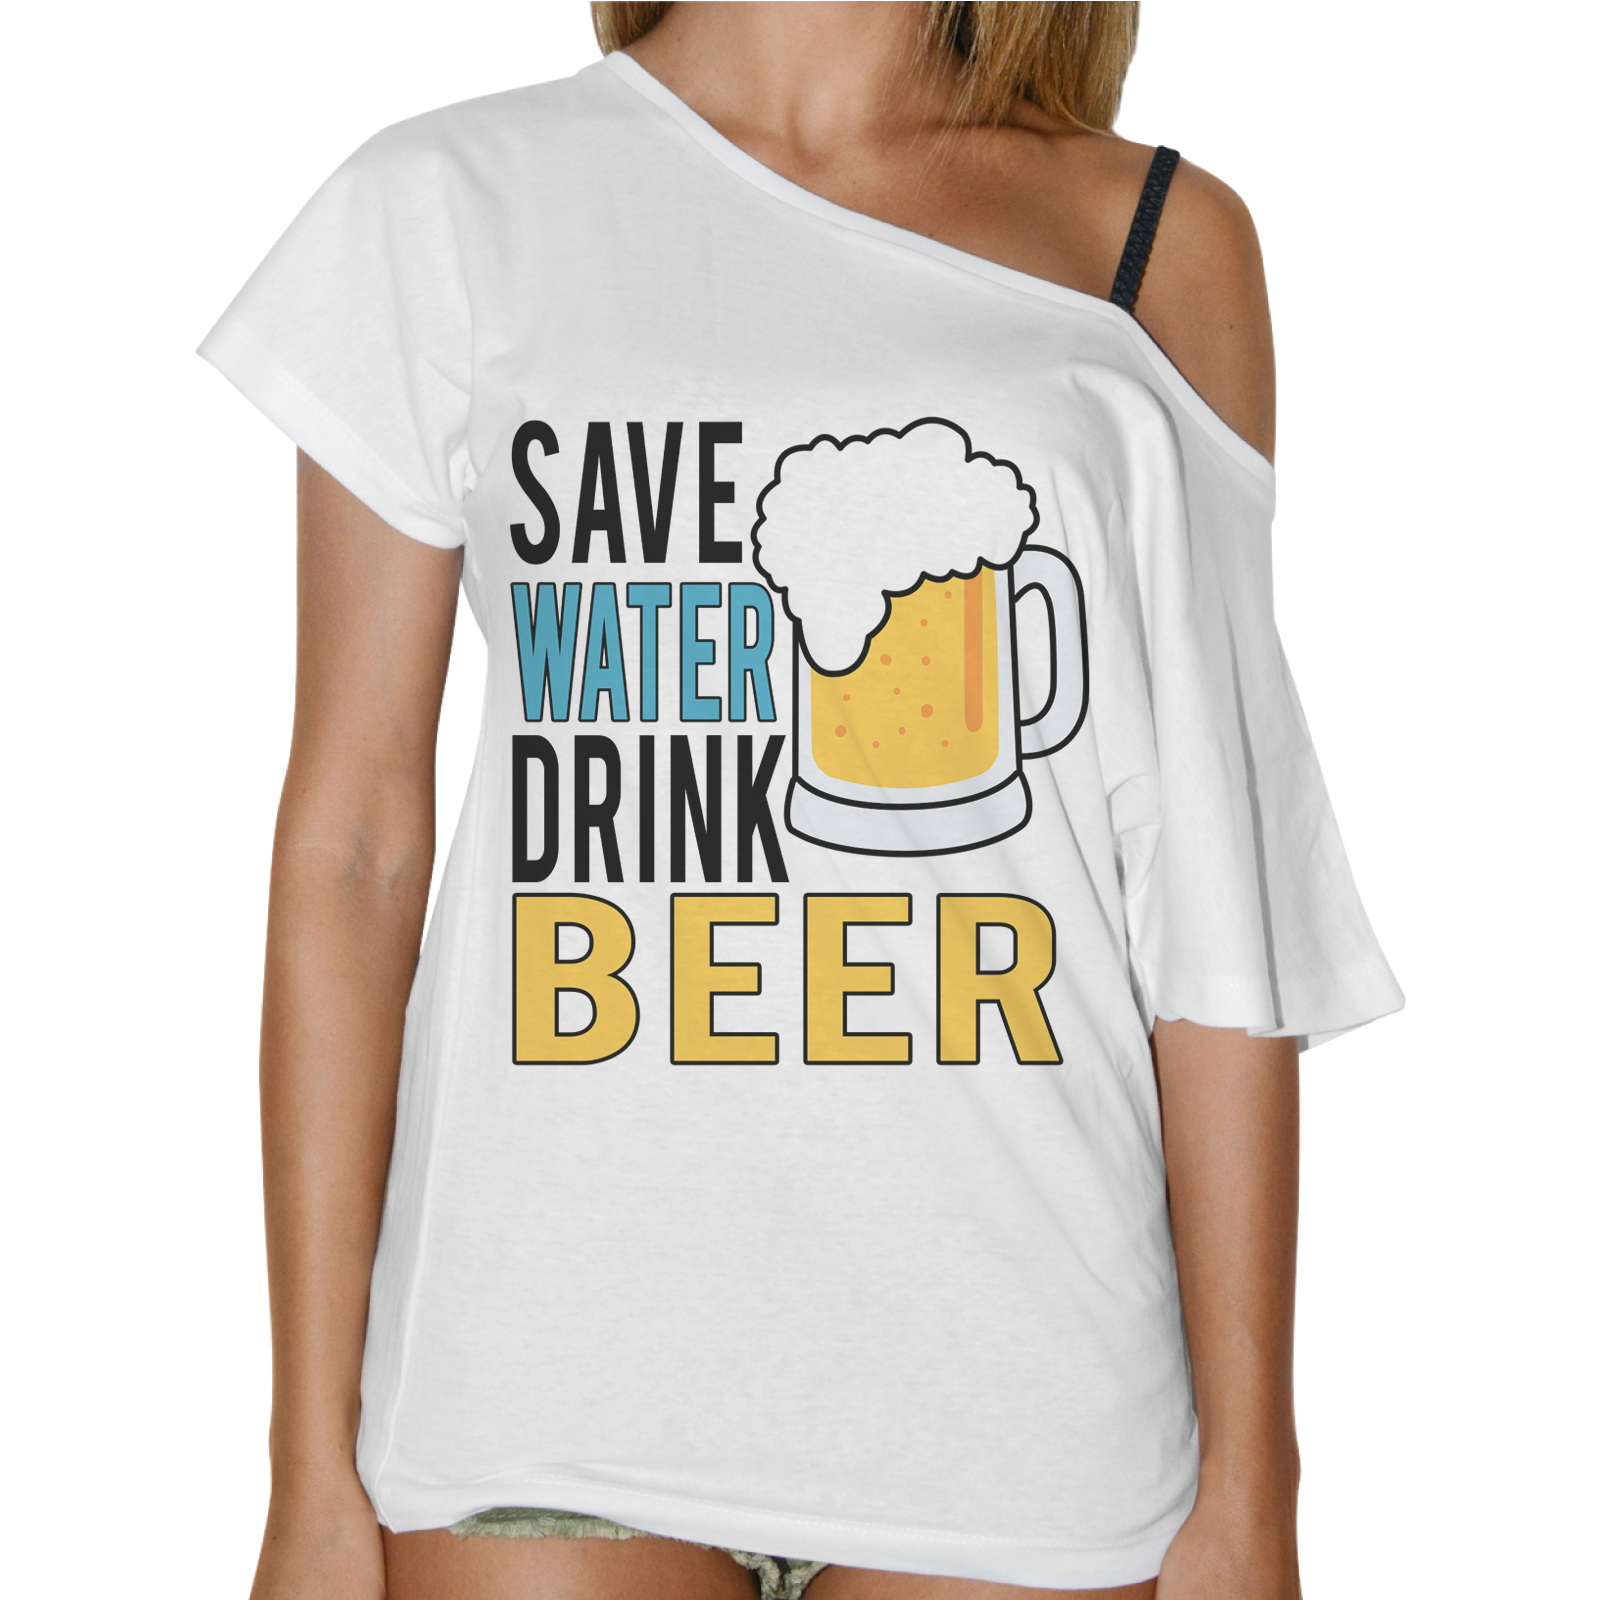 T-Shirt Donna Collo Barca SAVE WATER DRINK BEER 1